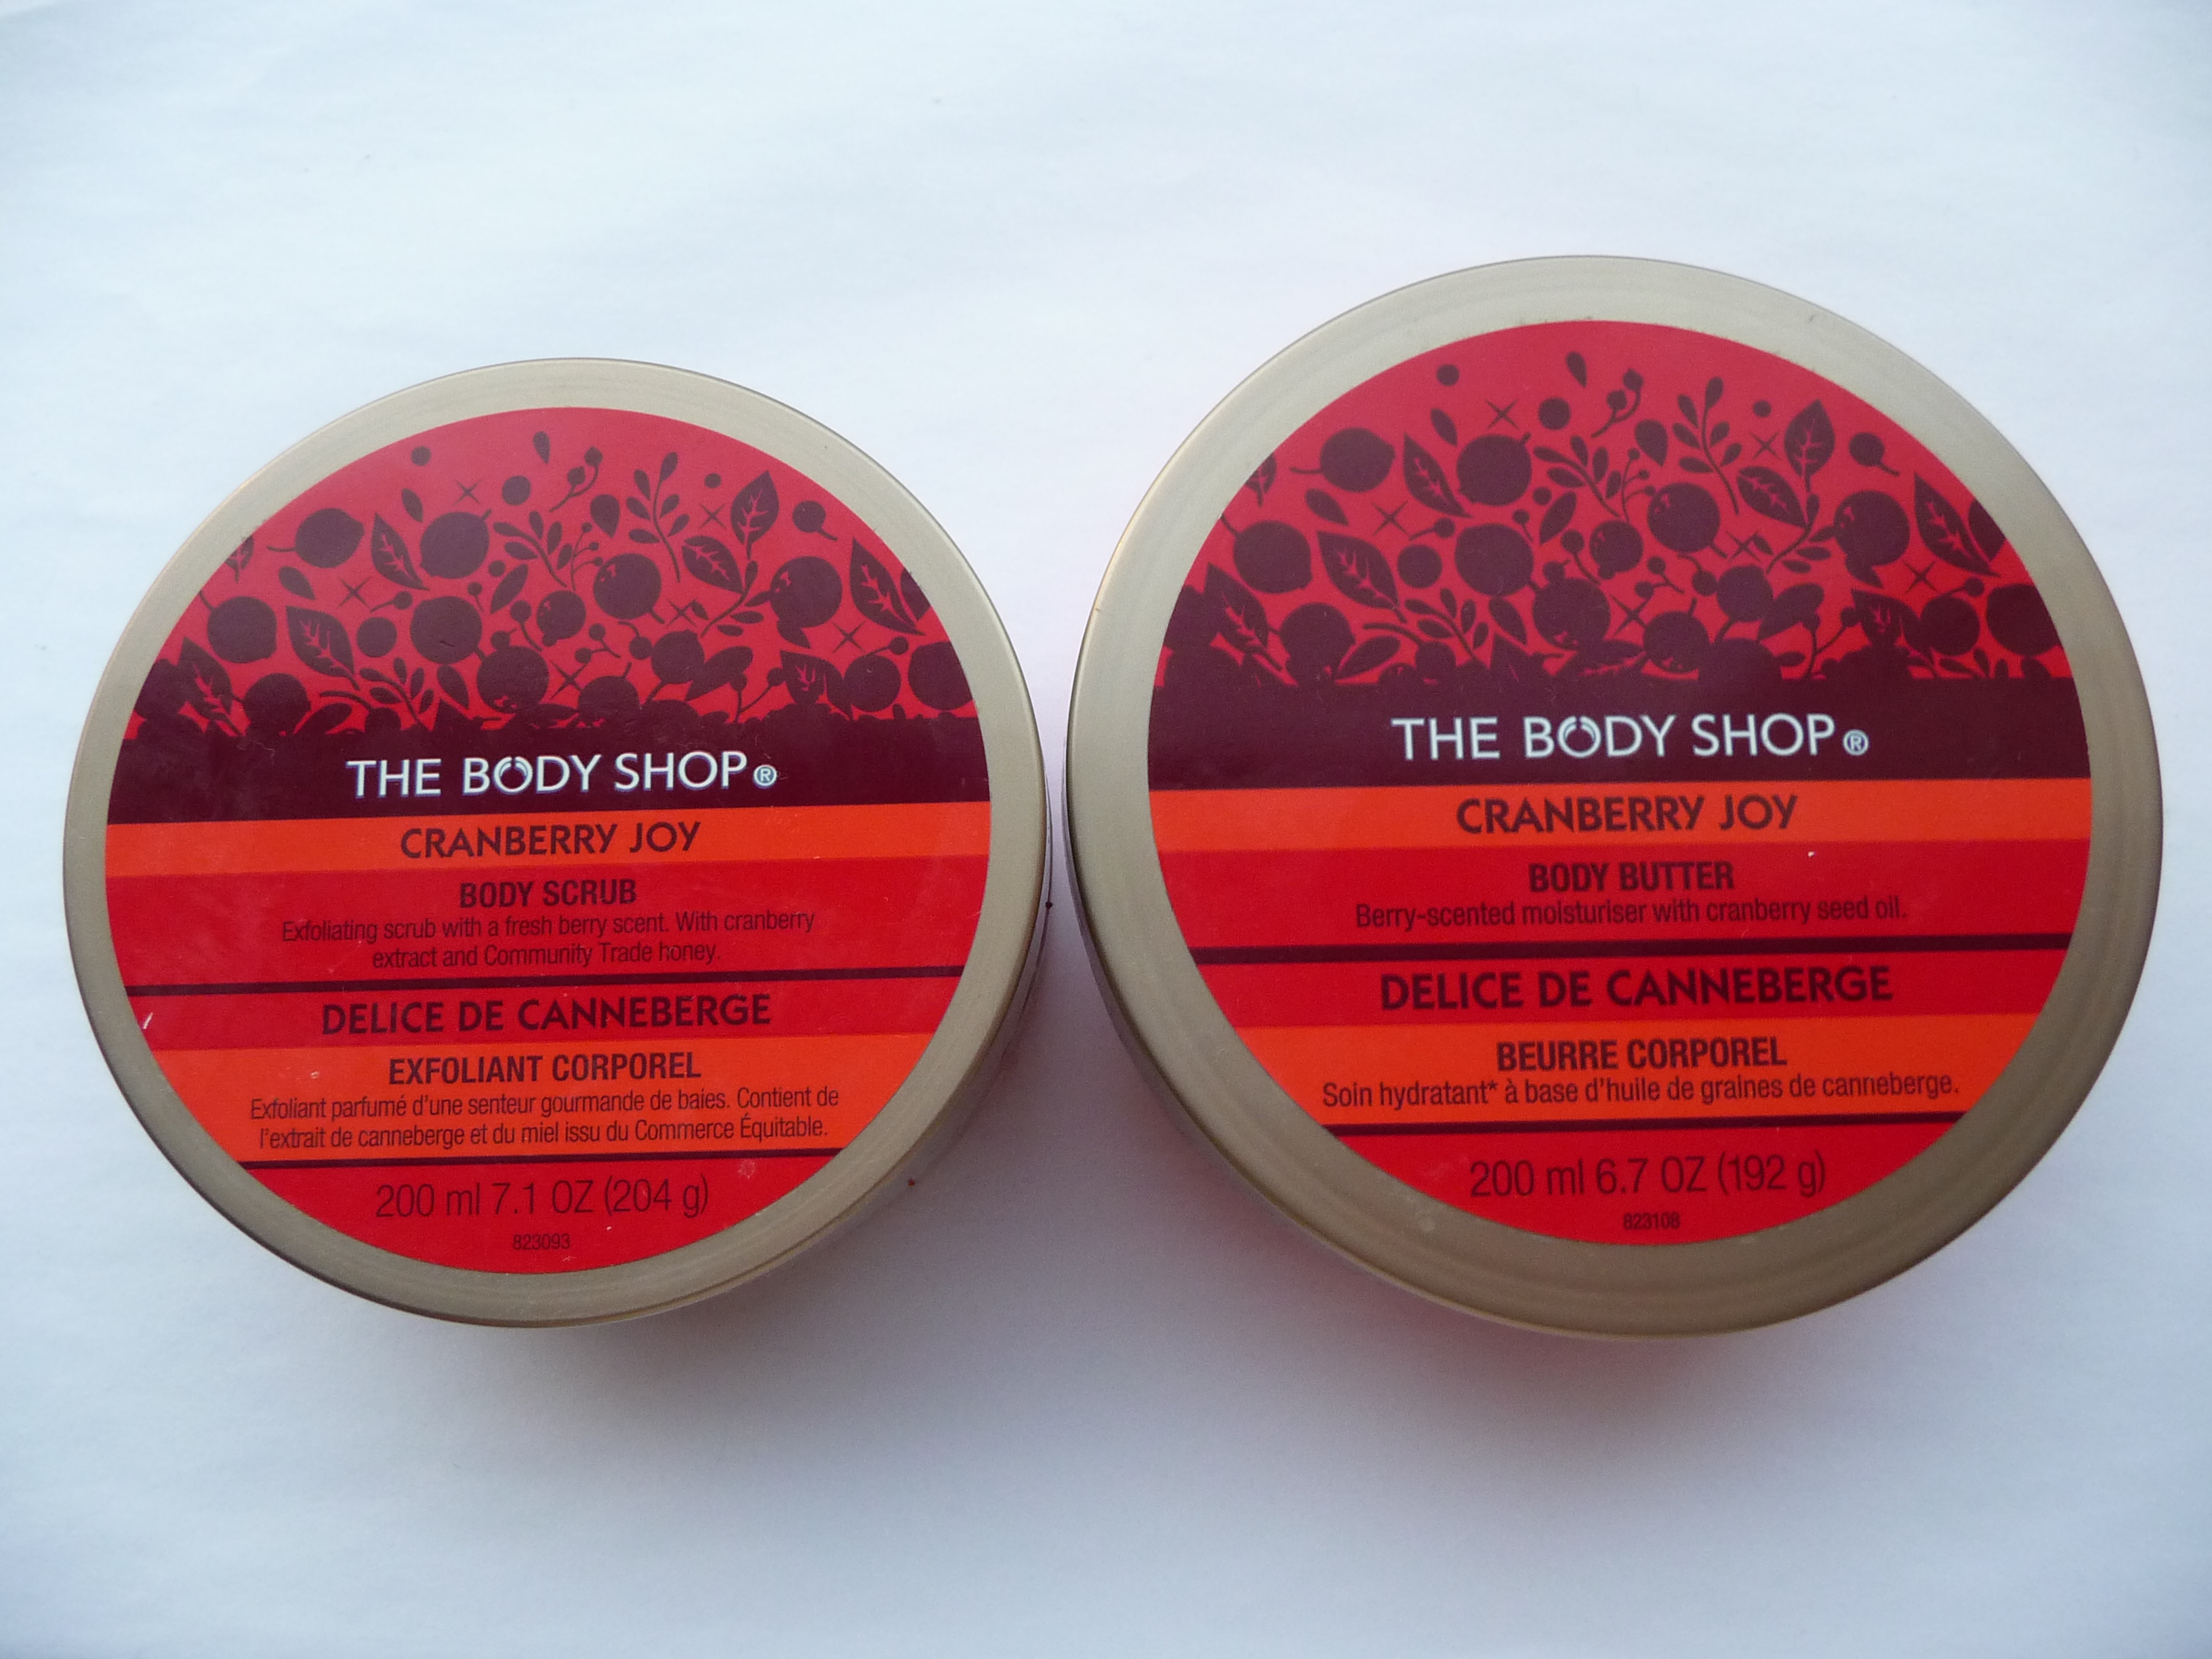 The Body Shop - Cranberry Joy